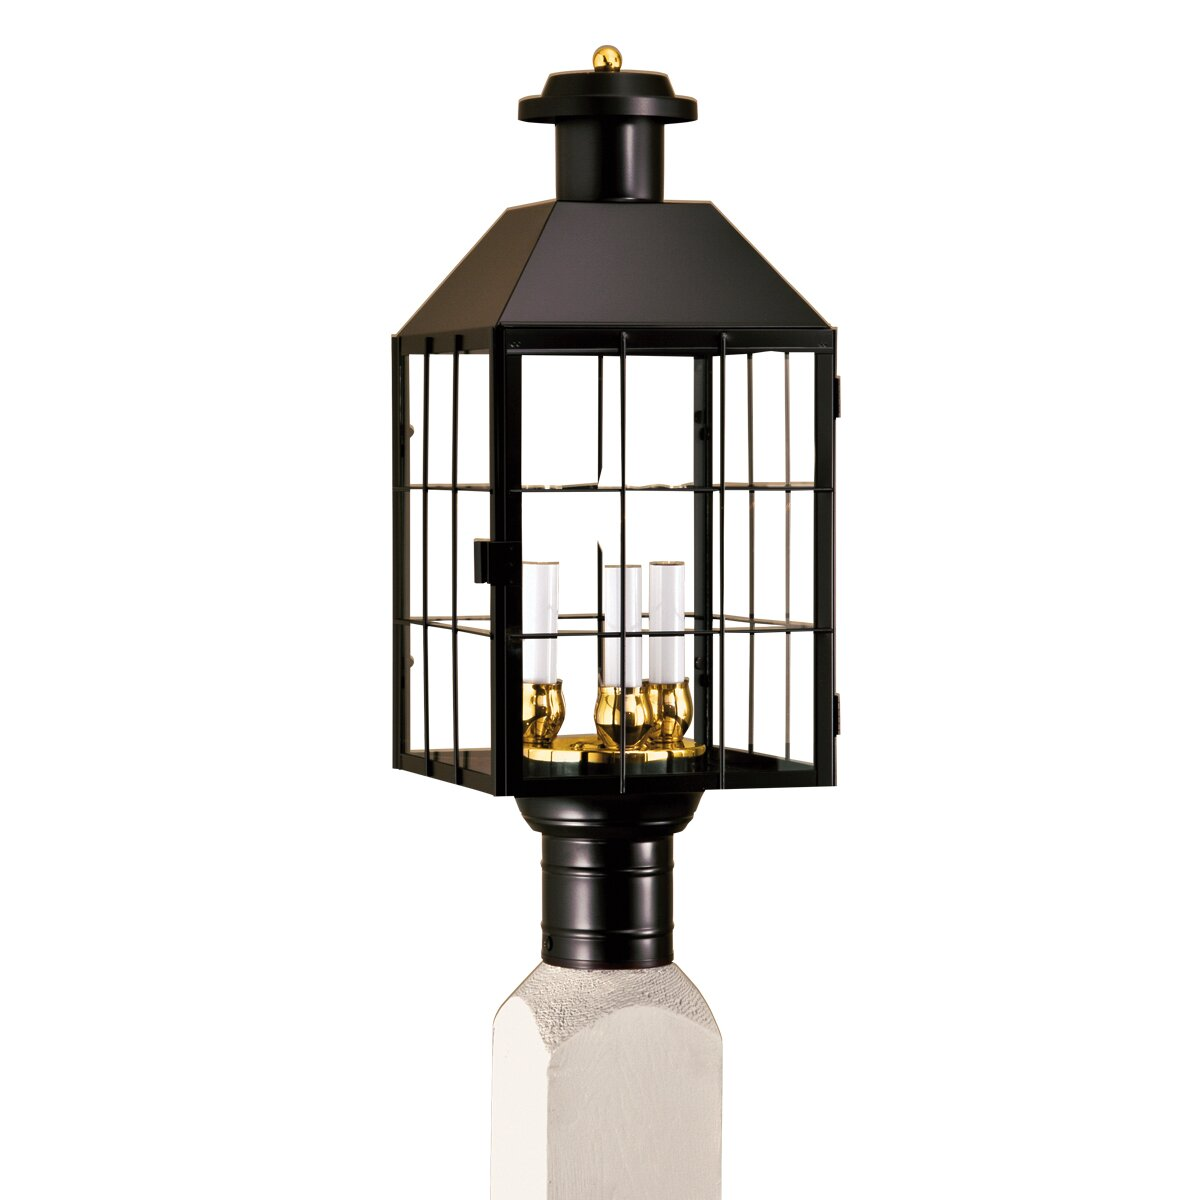 Norwell lighting american heritage 3 light outdoor post - Early american exterior lighting ...